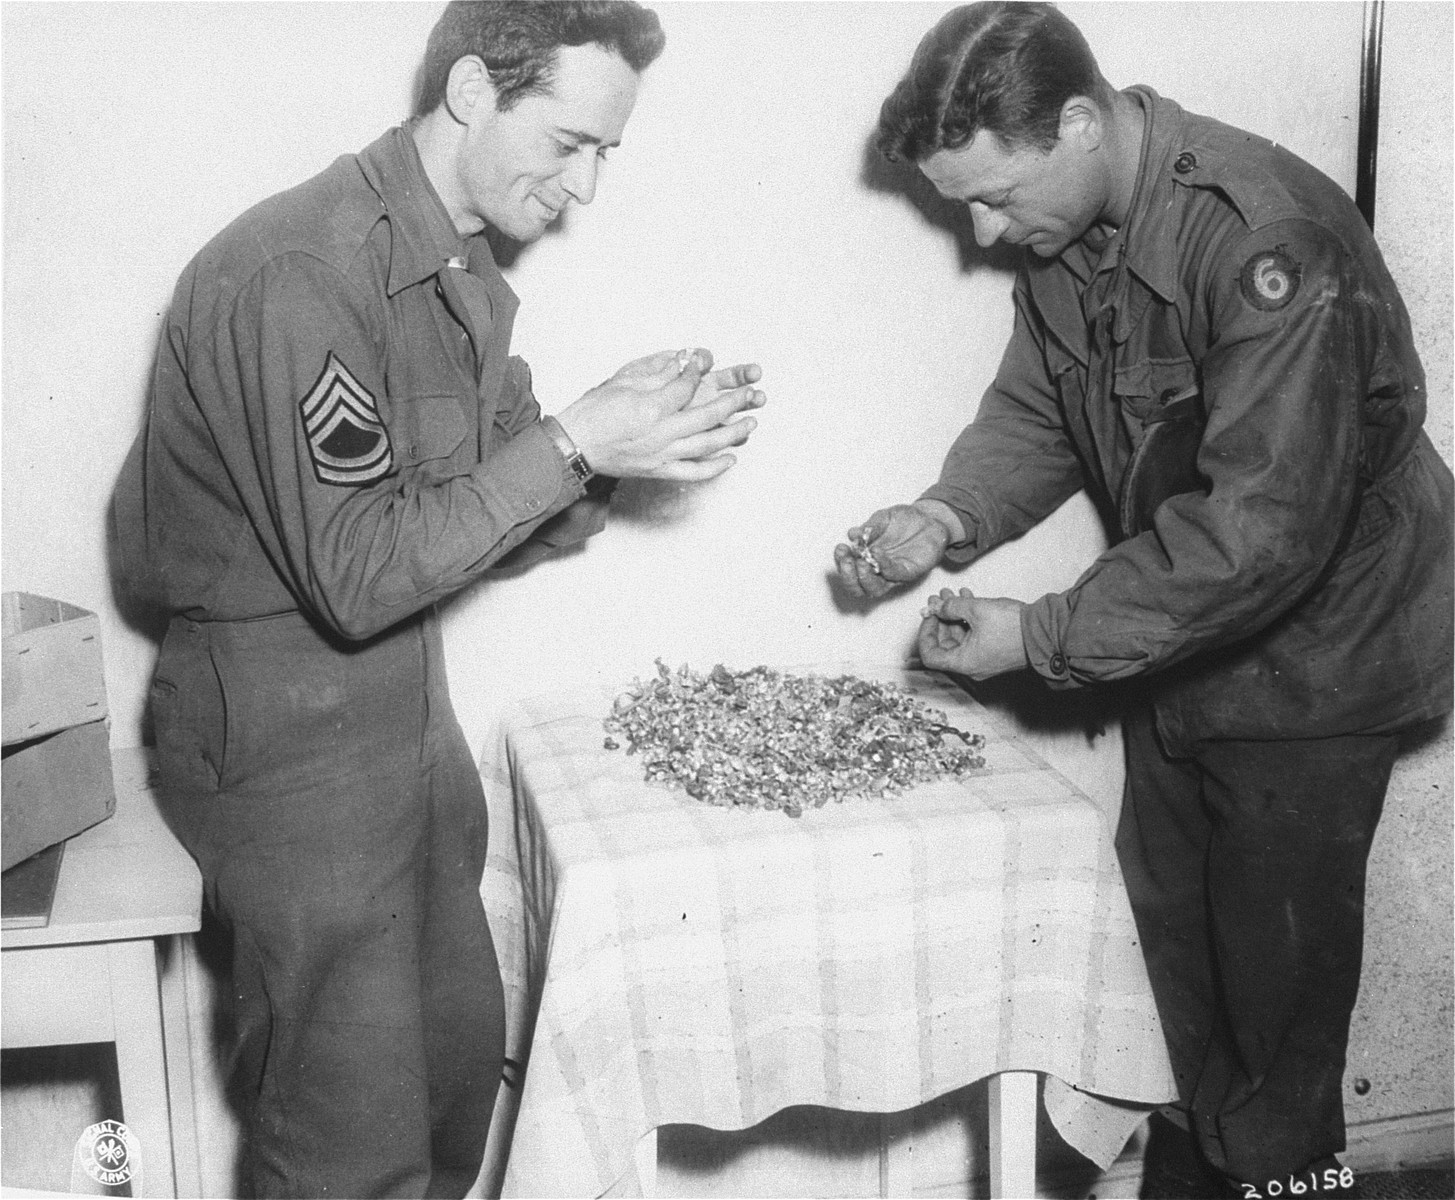 Tech Sgt. Claude L. Campellone (left) and Tech 4 Charles Henry look over the gold fillings that were found in Dachau.  The fillings were removed by the Germans when the prisoners died or were killed.